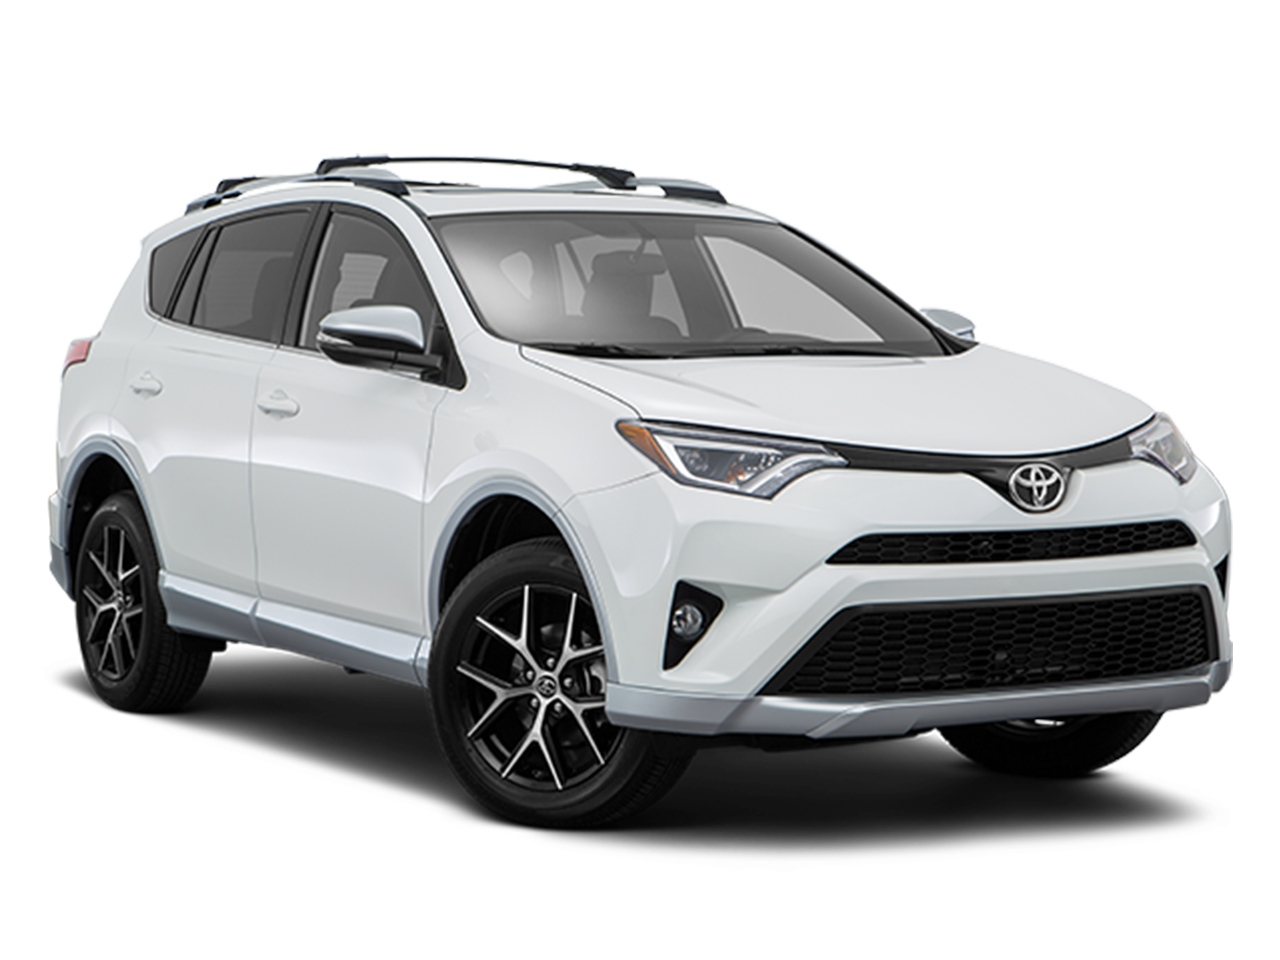 Compare The 2016 Toyota Rav4 Vs 2016 Chevrolet Trax